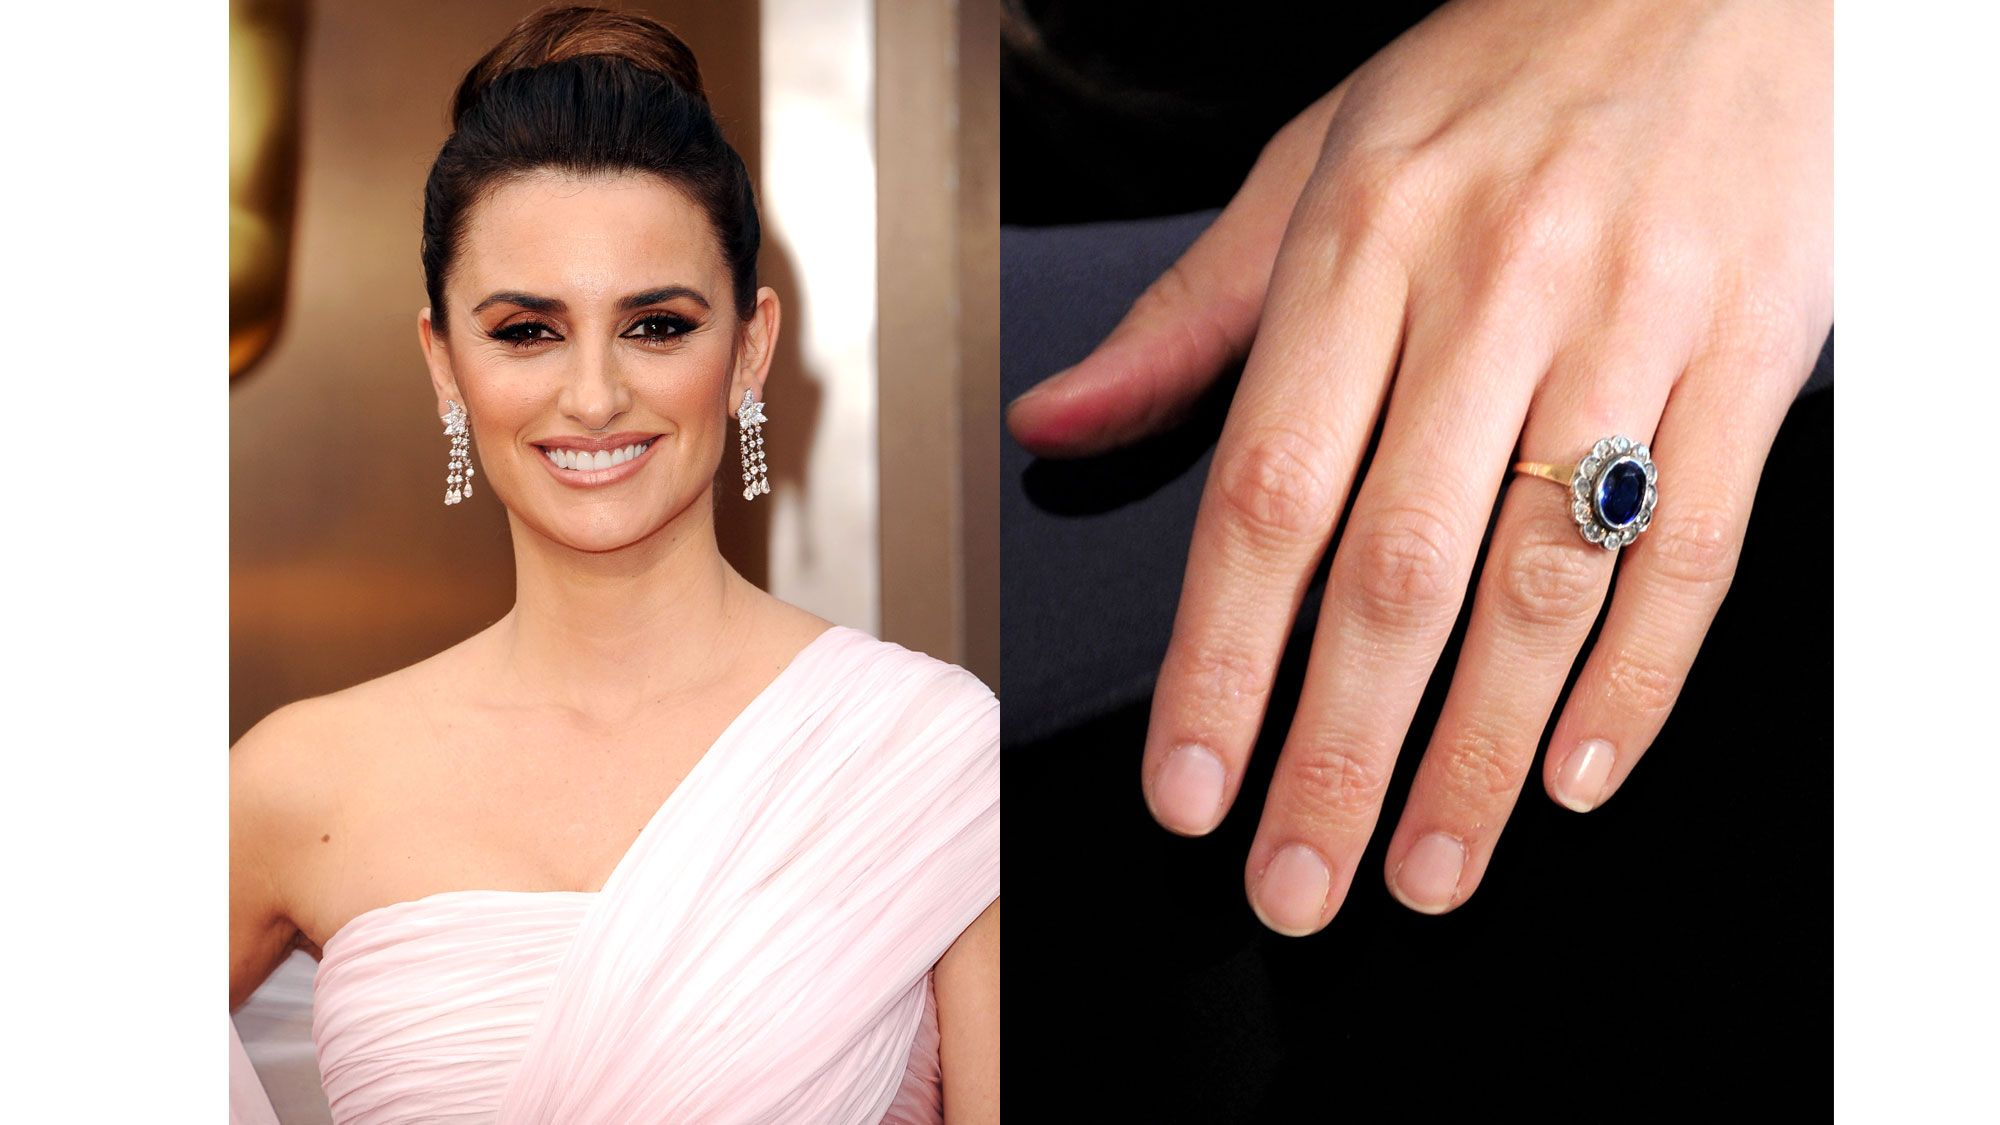 ring pictures rings wedding celeb celebrity engagement popsugar